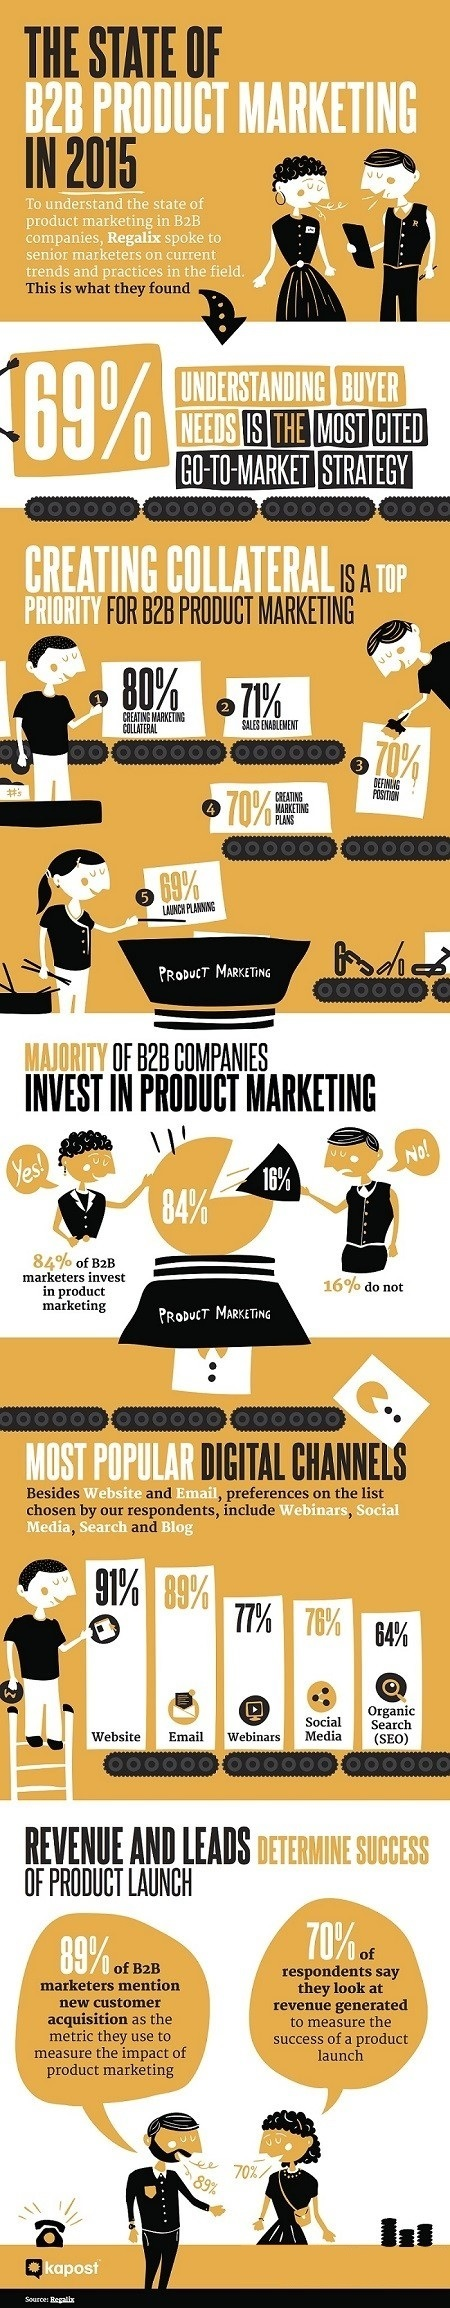 The State of B2B Product Marketing #Infographic via @MarketingHits | Digital boards | Scoop.it